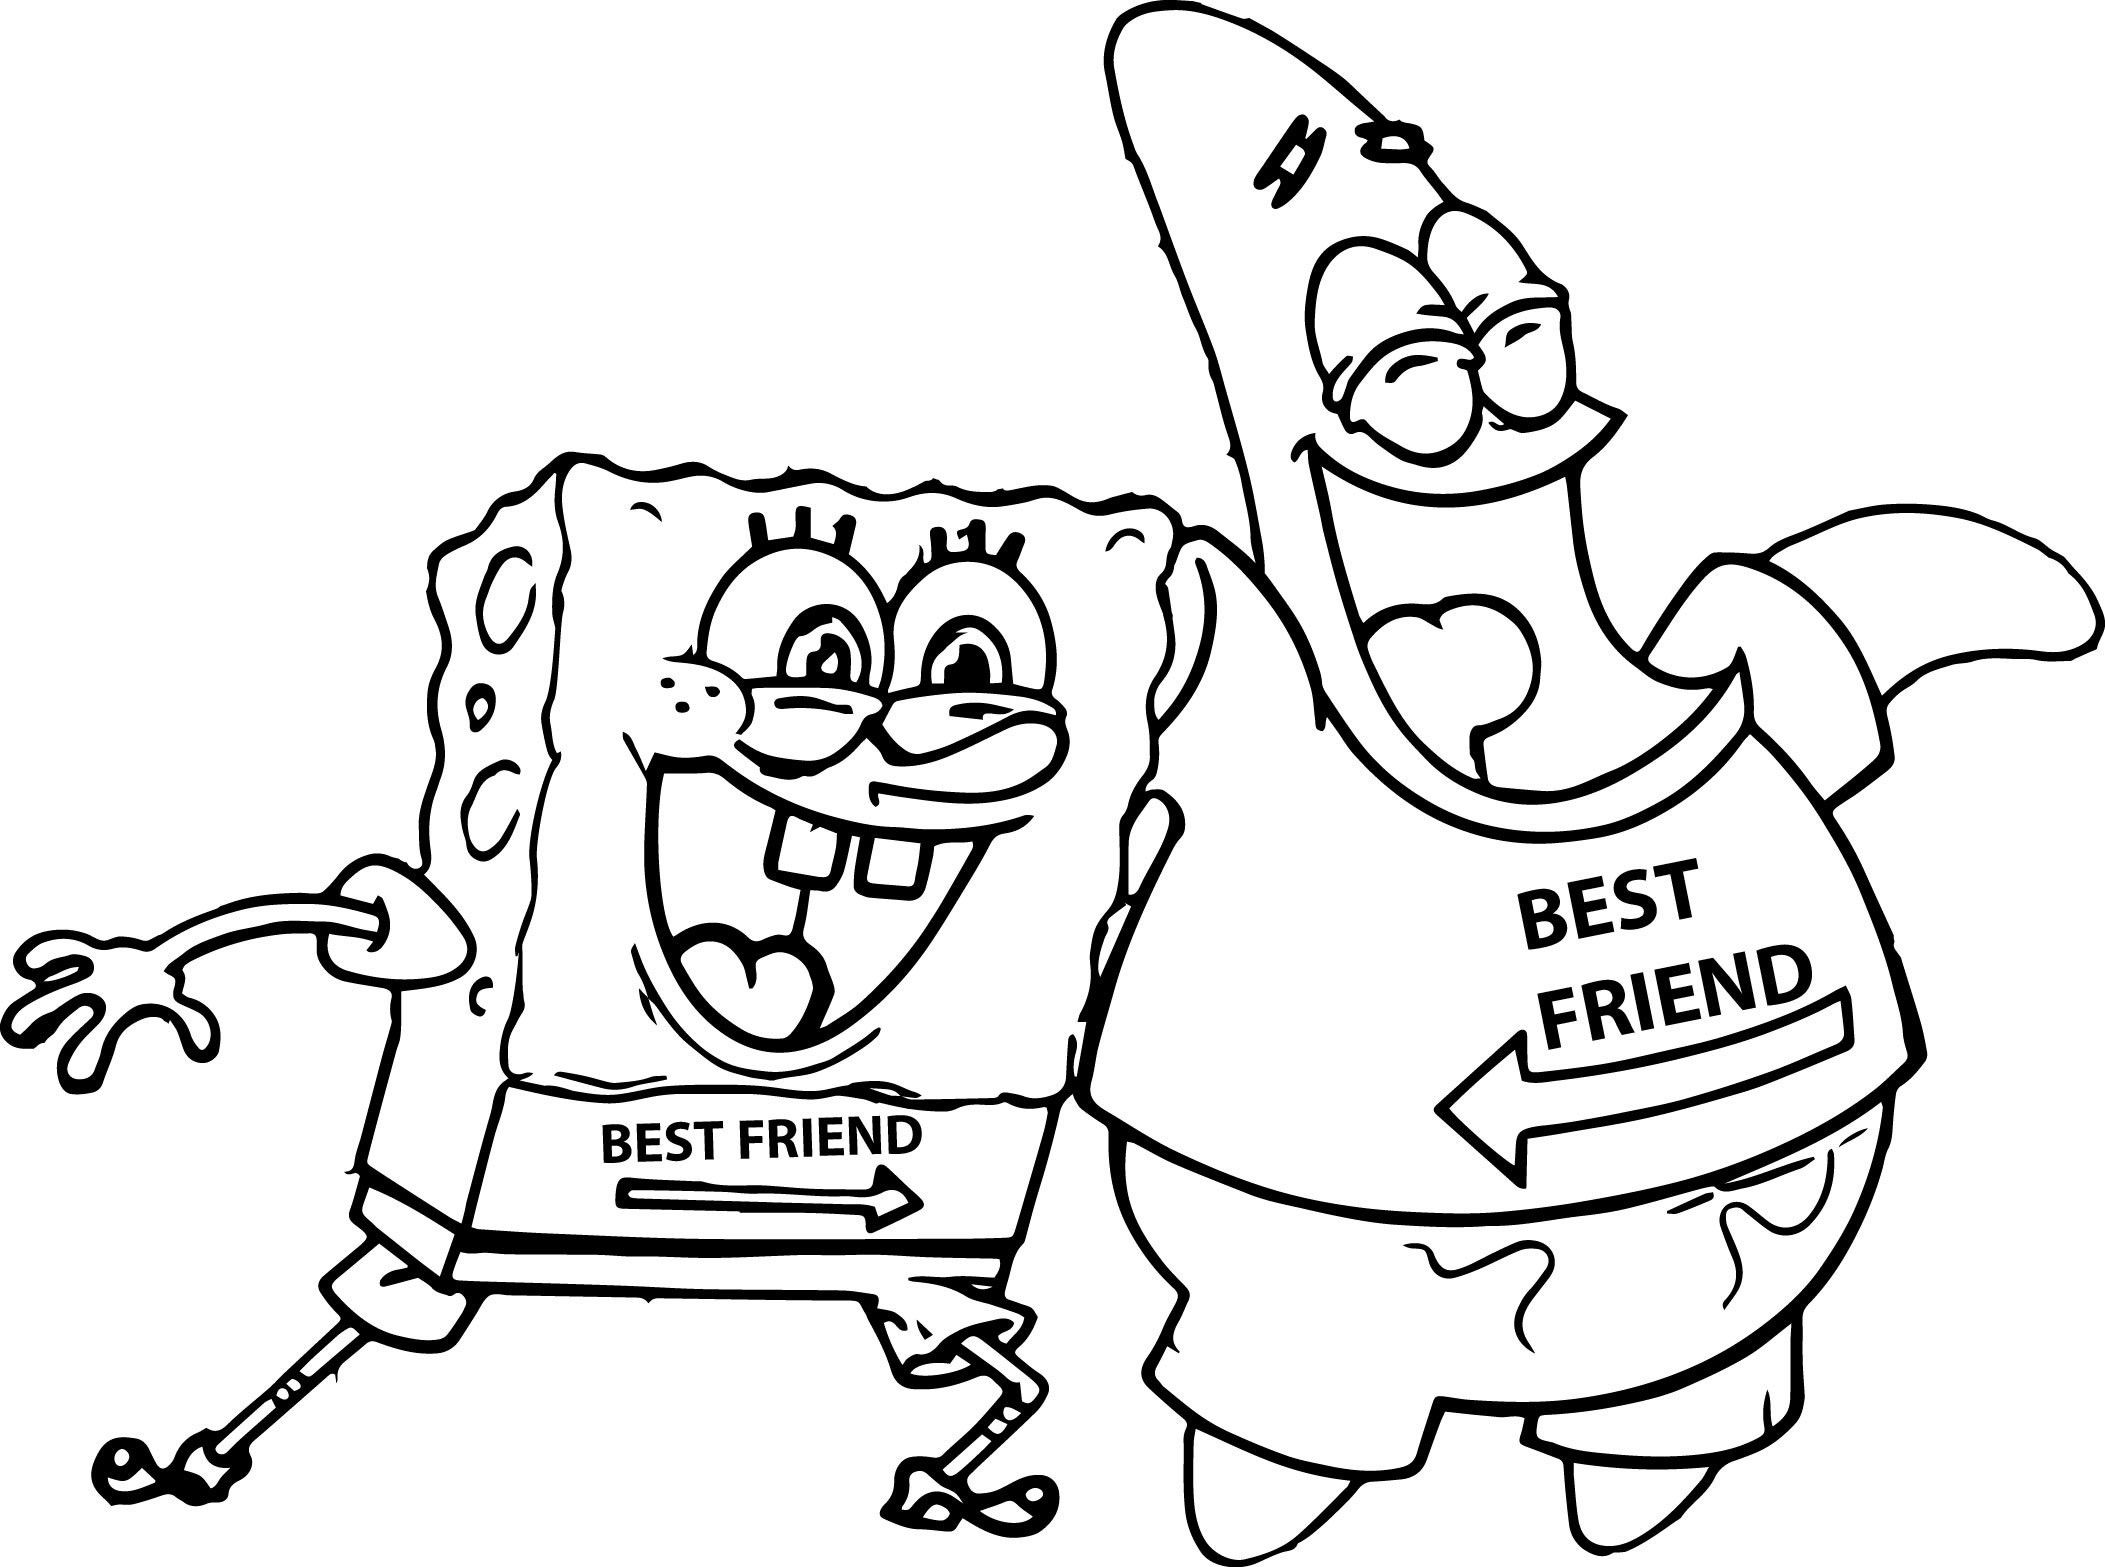 Easy Spongebob Coloring Pages From The Thousand Images On The Net Concerning Easy Spongebob Col Spongebob Drawings Drawings Of Friends Cartoon Coloring Pages